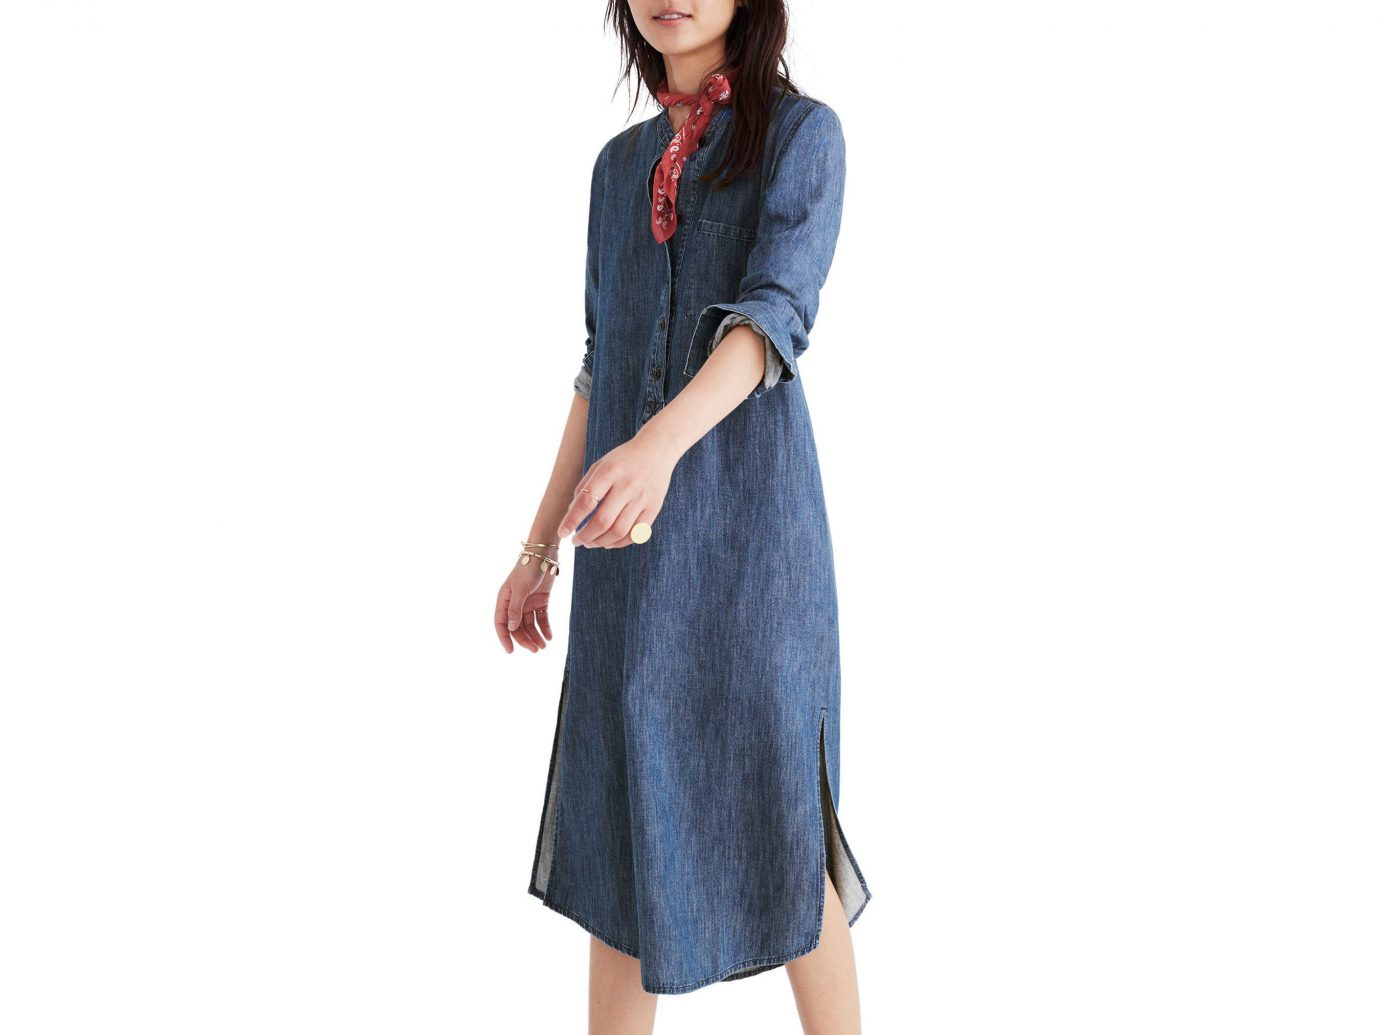 Style + Design clothing person denim jeans day dress wearing dress fashion model neck posing sleeve button